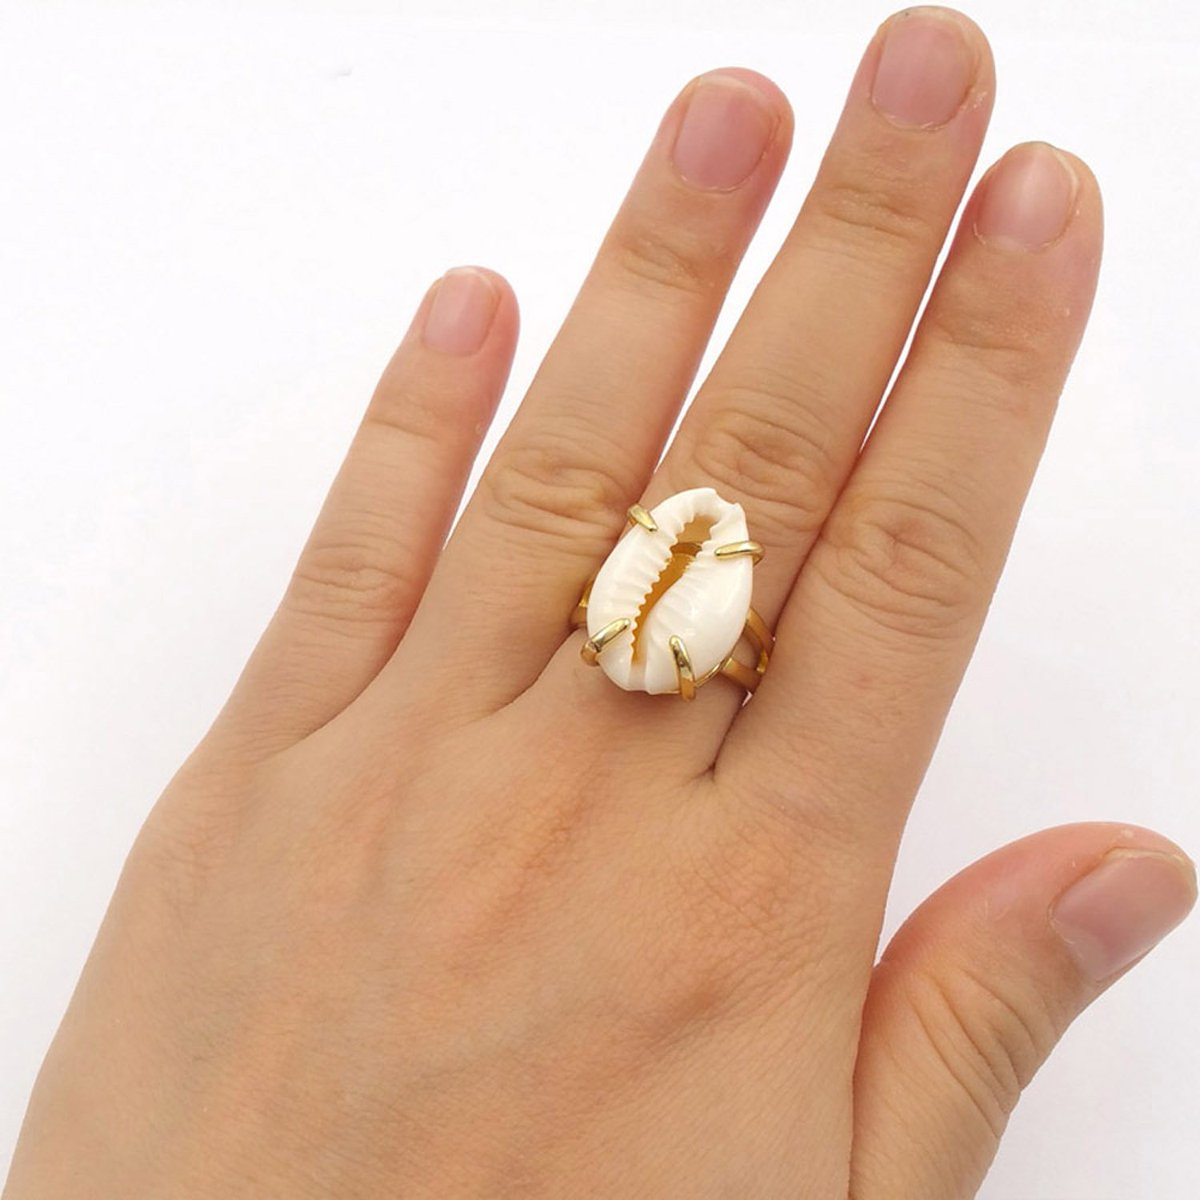 Simple design, cowrie shell rings jewelry#ring #jewelry #wedding #etsyjewelry <br>http://pic.twitter.com/JXCngJD4Zi